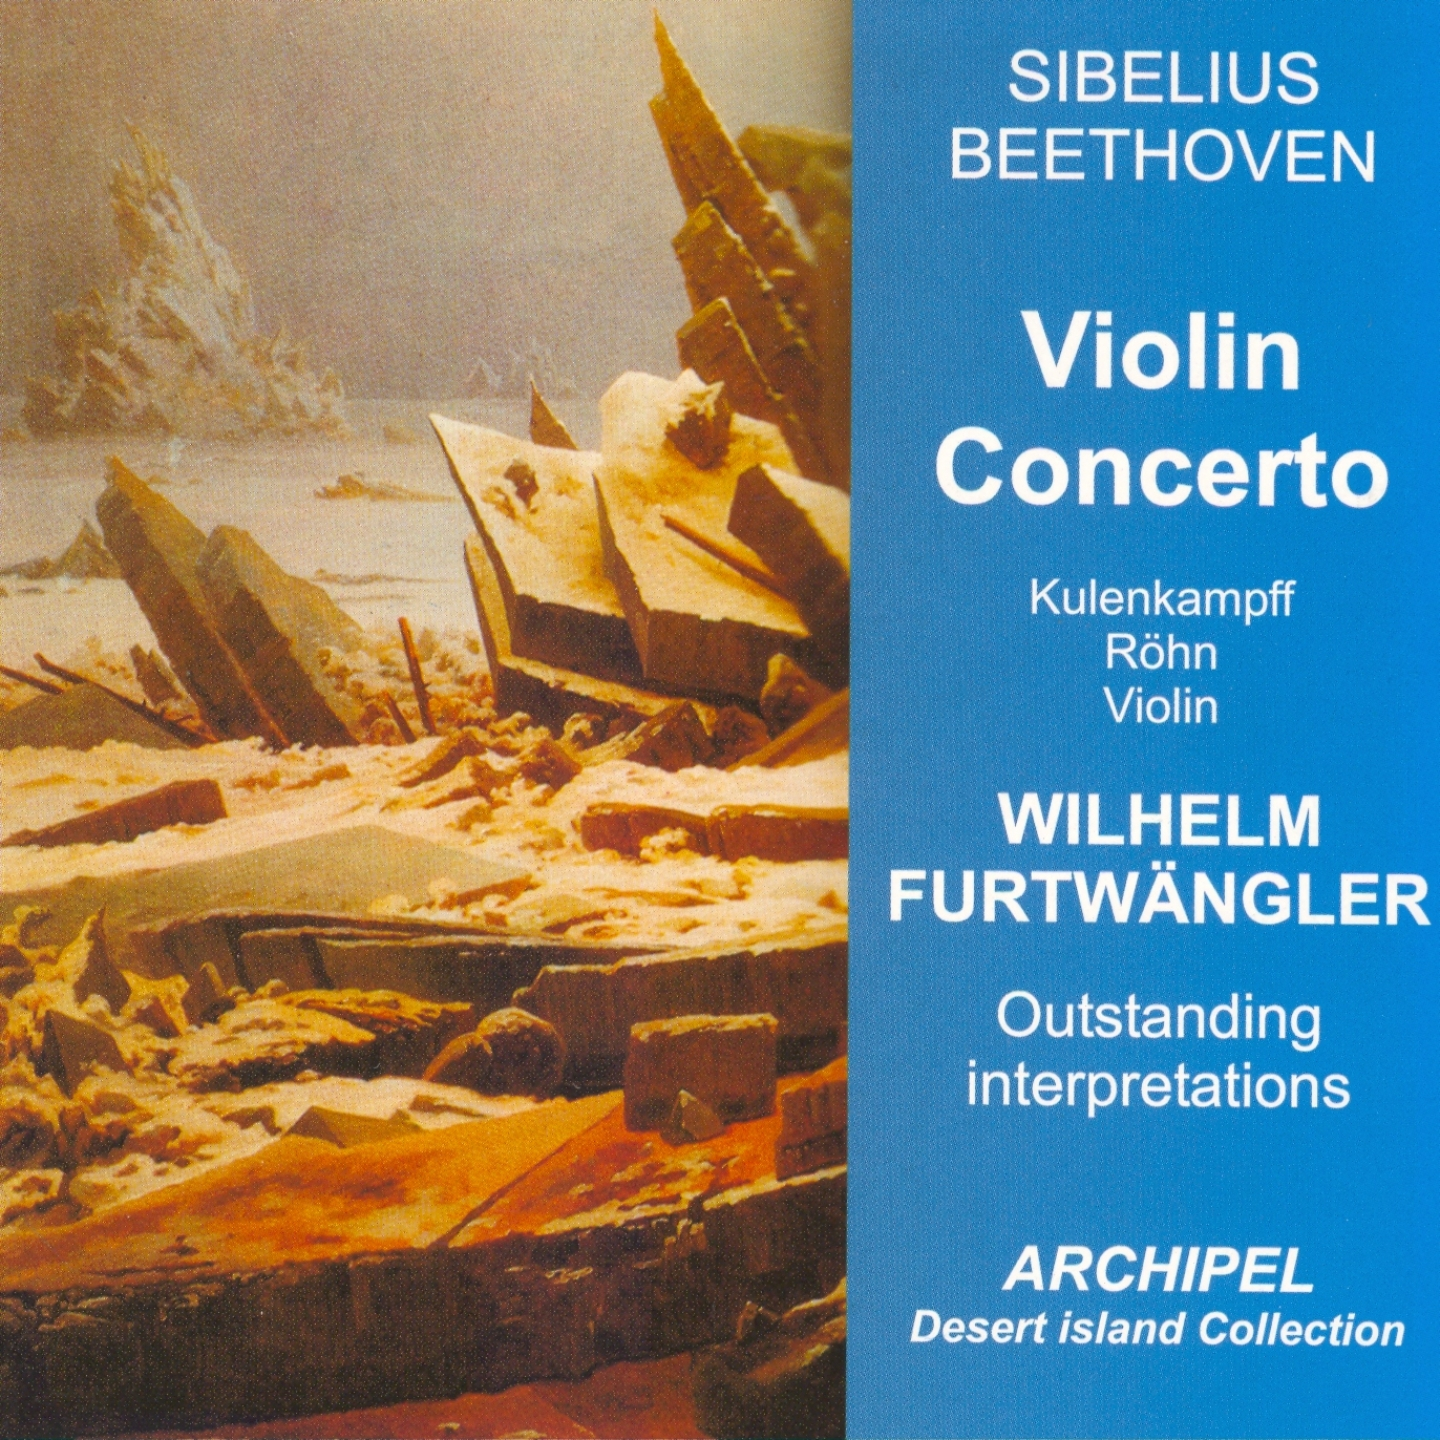 Luwig Van Beethoven: Concerto for Violin and Orchestra In D Op.61 - Allegro Ma Non Troppo